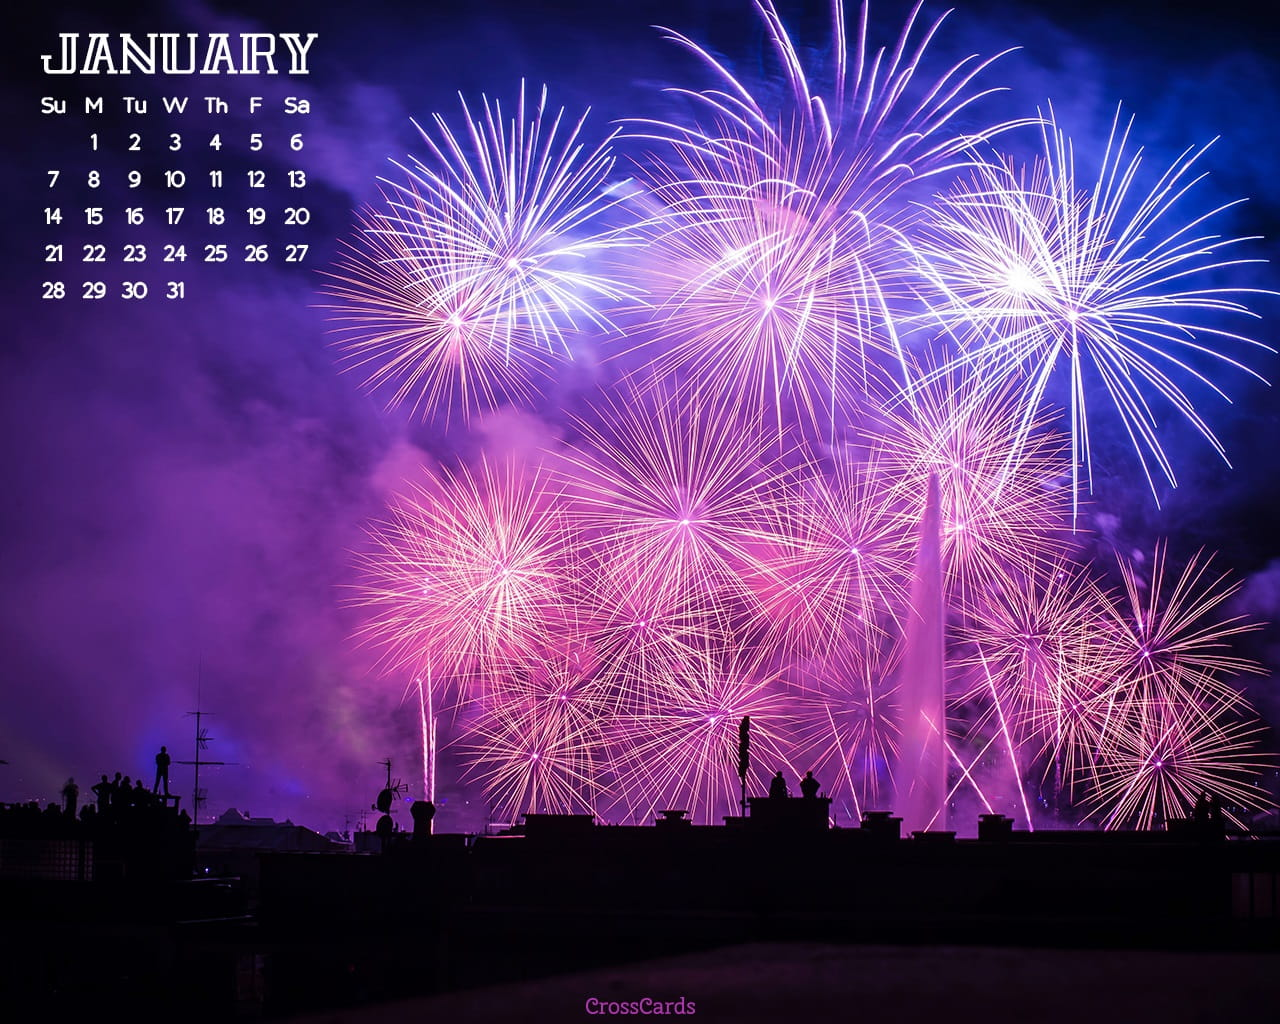 January 2018   Fireworks Desktop Calendar  January 1280x1024